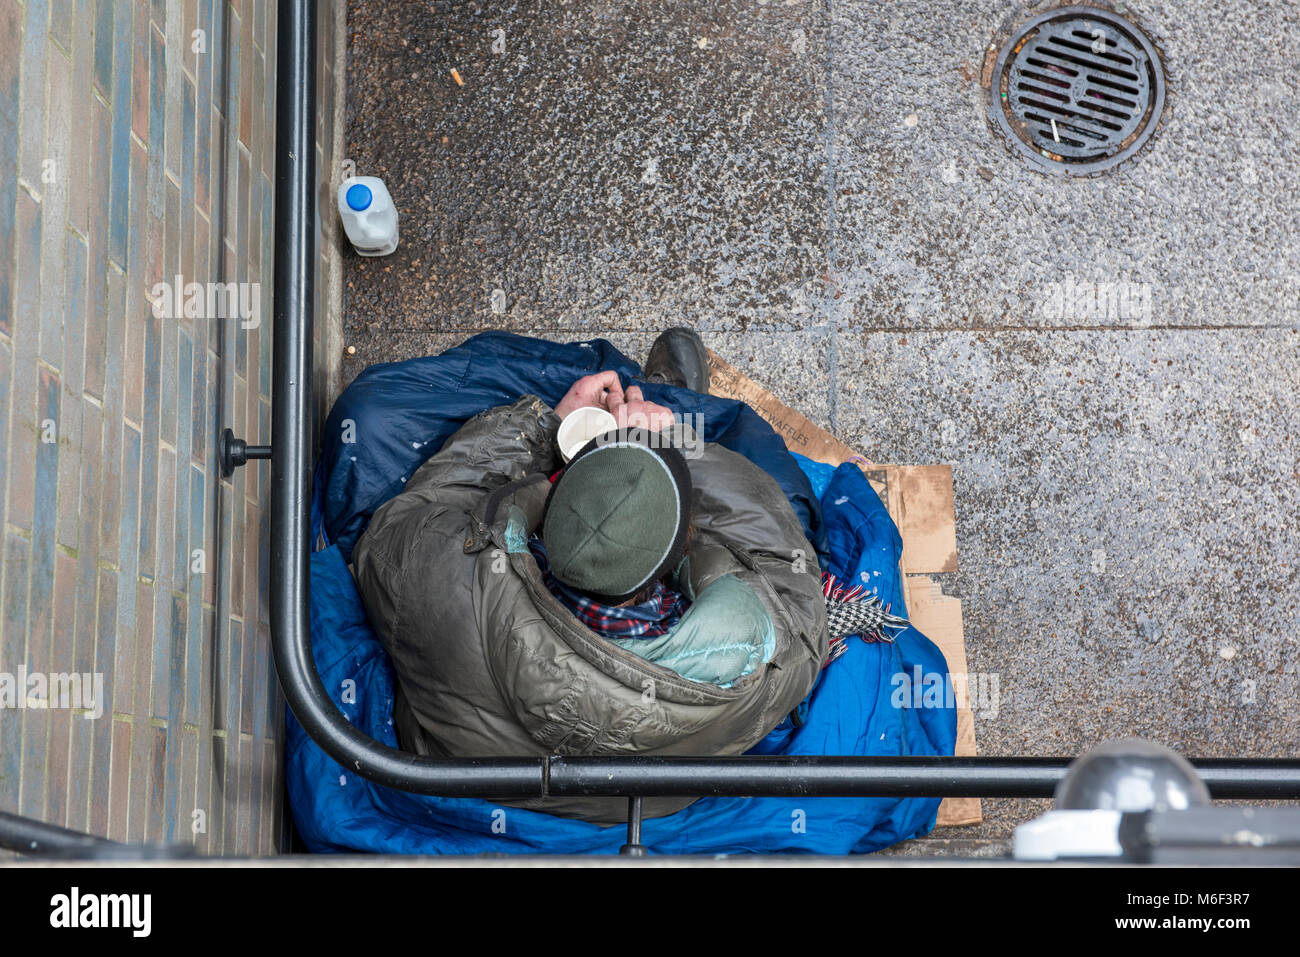 a beggar or homeless man on the streets of the capital city london. homelessness and poverty in the UK. hopeless - Stock Image